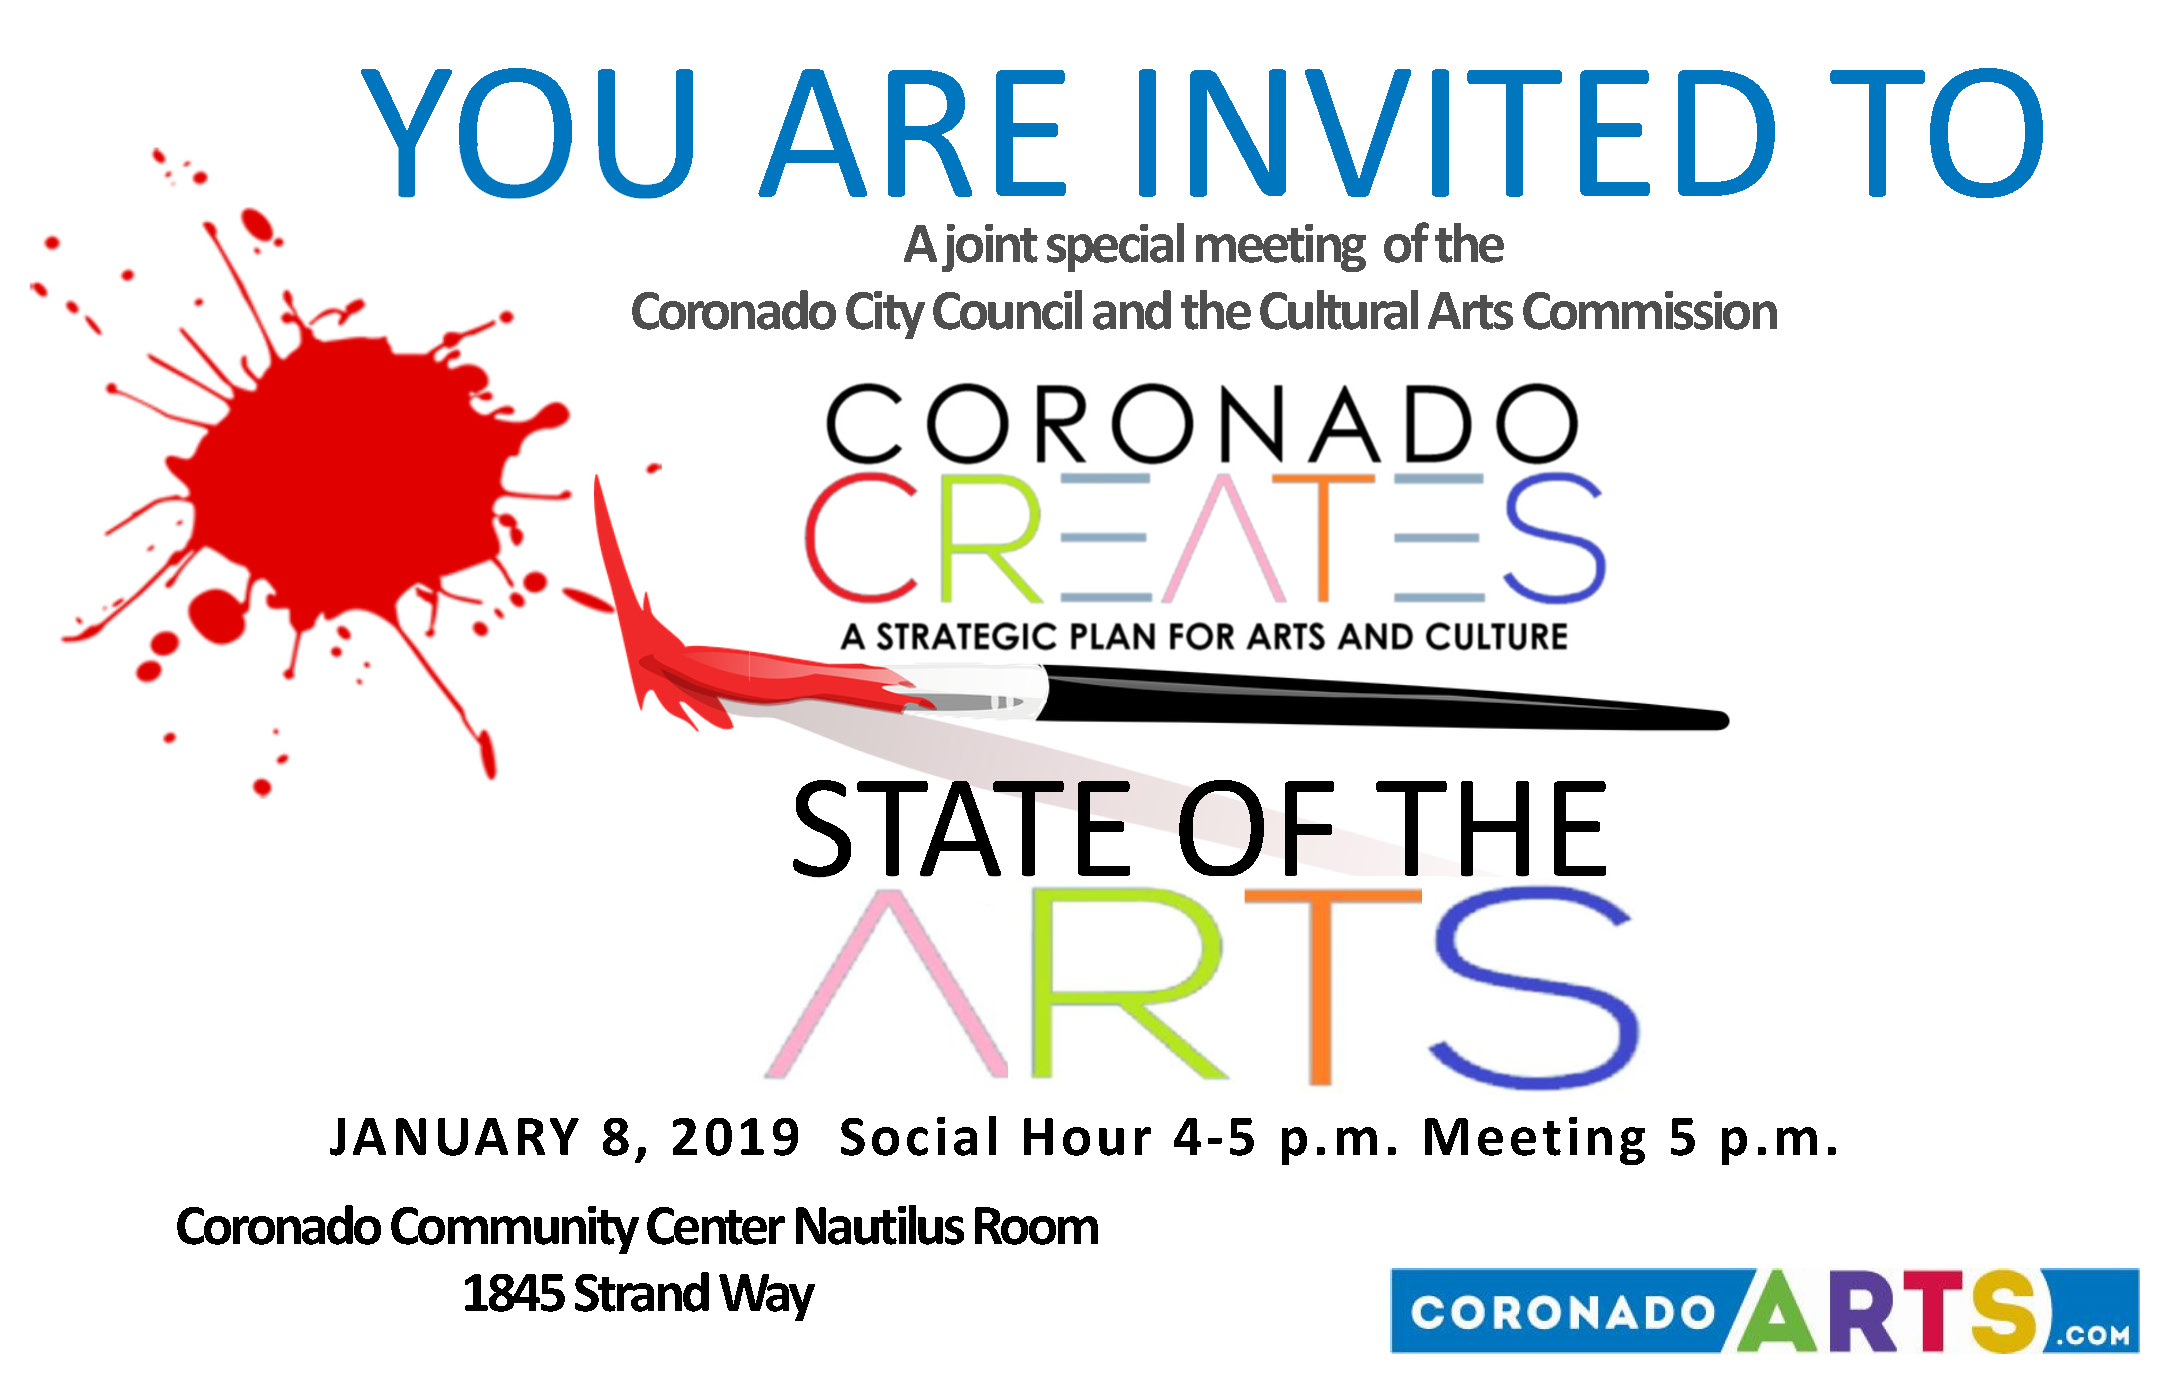 State of the Arts Invite